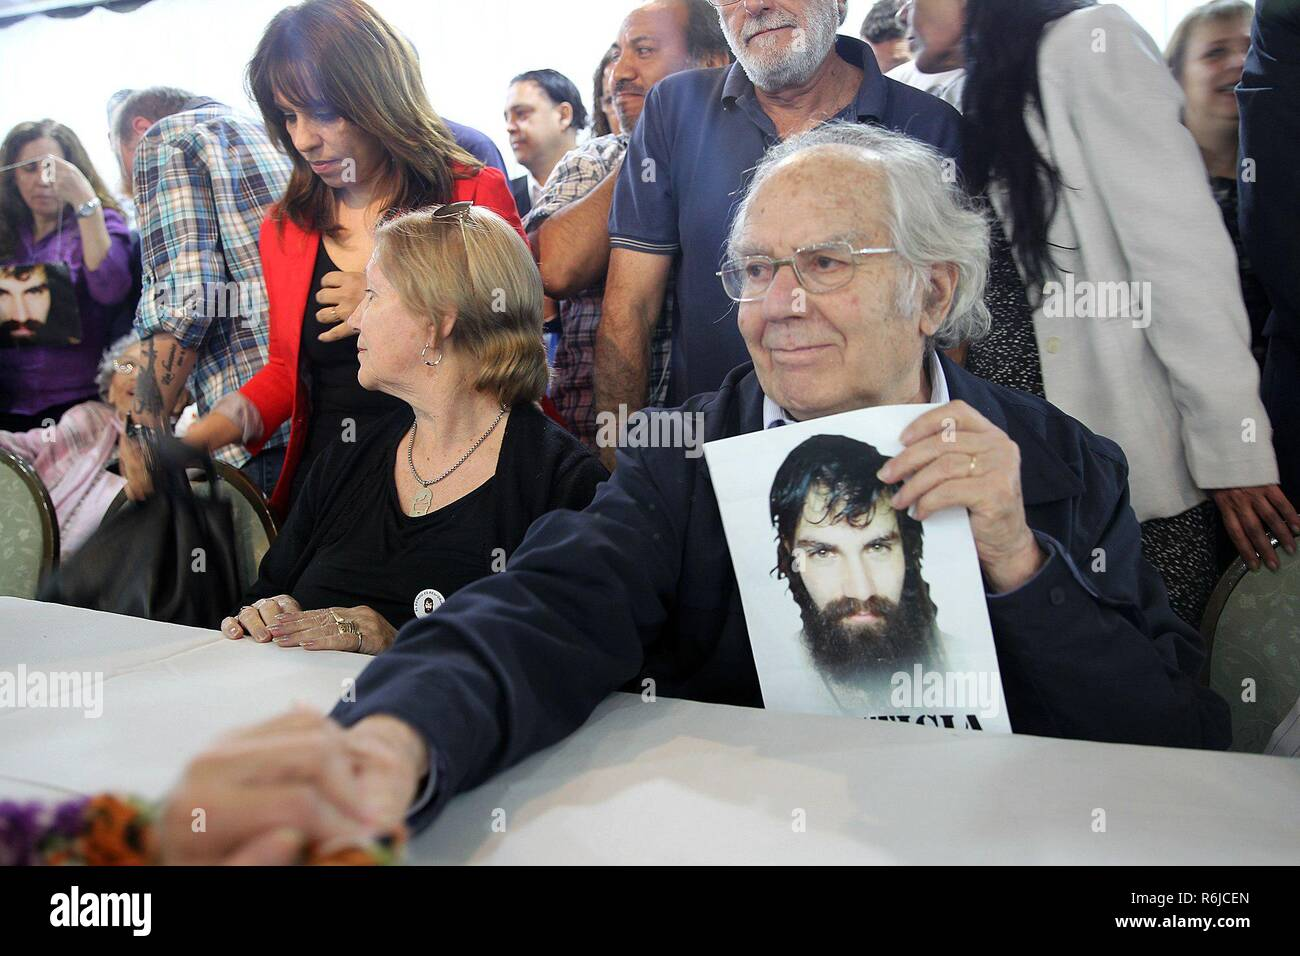 Buenos Aires, Argentina. 05th Dec, 2018. Argentinian Peace Nobel laureate Adolfo Perez Esquivel takes part in a press conference of the family of Santiago Maldonado, in Buenos Aires, Argentina, 05 December 2018. Maldonado's family, whose corpse was found at a river in October 2017 after 78 days missing, denounced that the decision to close the case was political and that the aim was to stop the investigation before the G20. Credit: Aitor Pereira/EFE/Alamy Live News - Stock Image